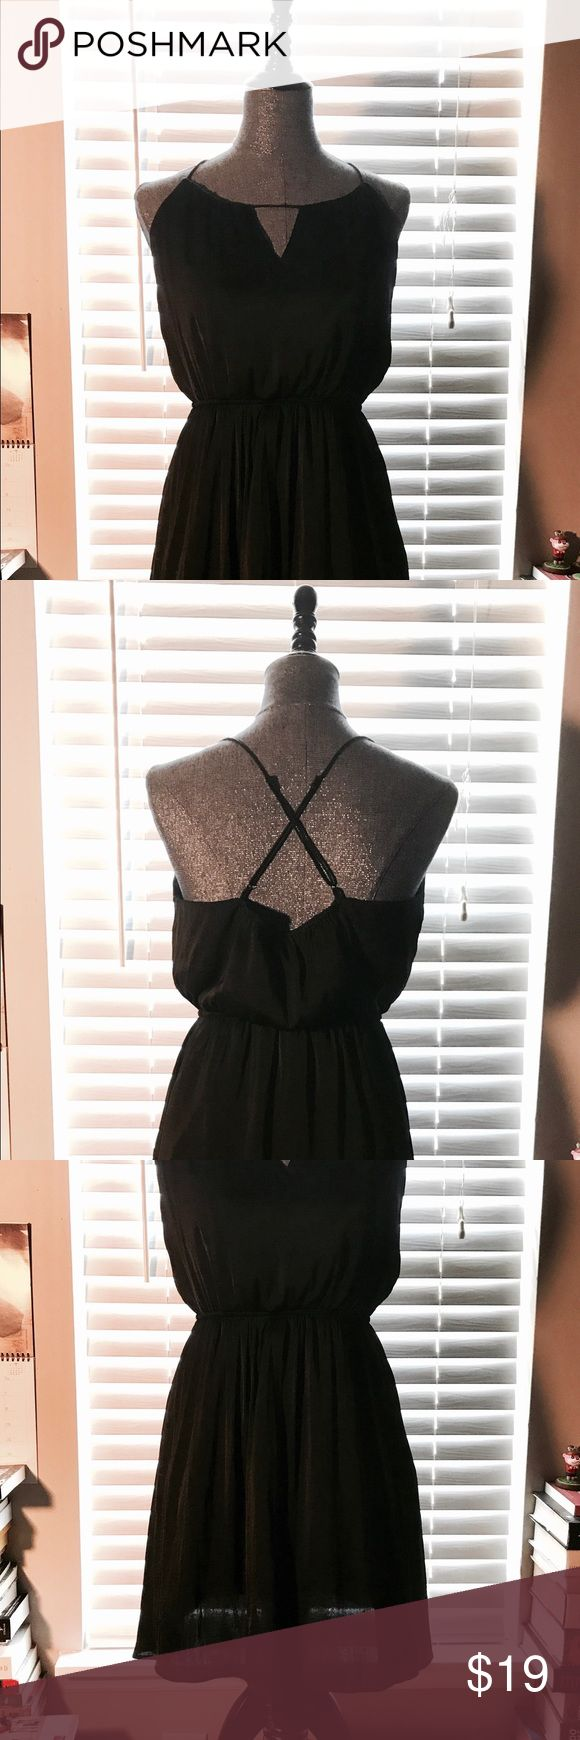 """Forever 21 Little Black Dress Never been worn! This sexy little number can be dressed up or down. Pair with a blazer for a flattering business look, wear it alone or with a belt for a day to day cause vibe. Dress comes just above the knees on me (5'4"""") material has almost a silky feel to it so even though it's more flowy, it still clings to your curves. ❤️❤️ love this item! It's so versatile. Forever 21 Dresses"""